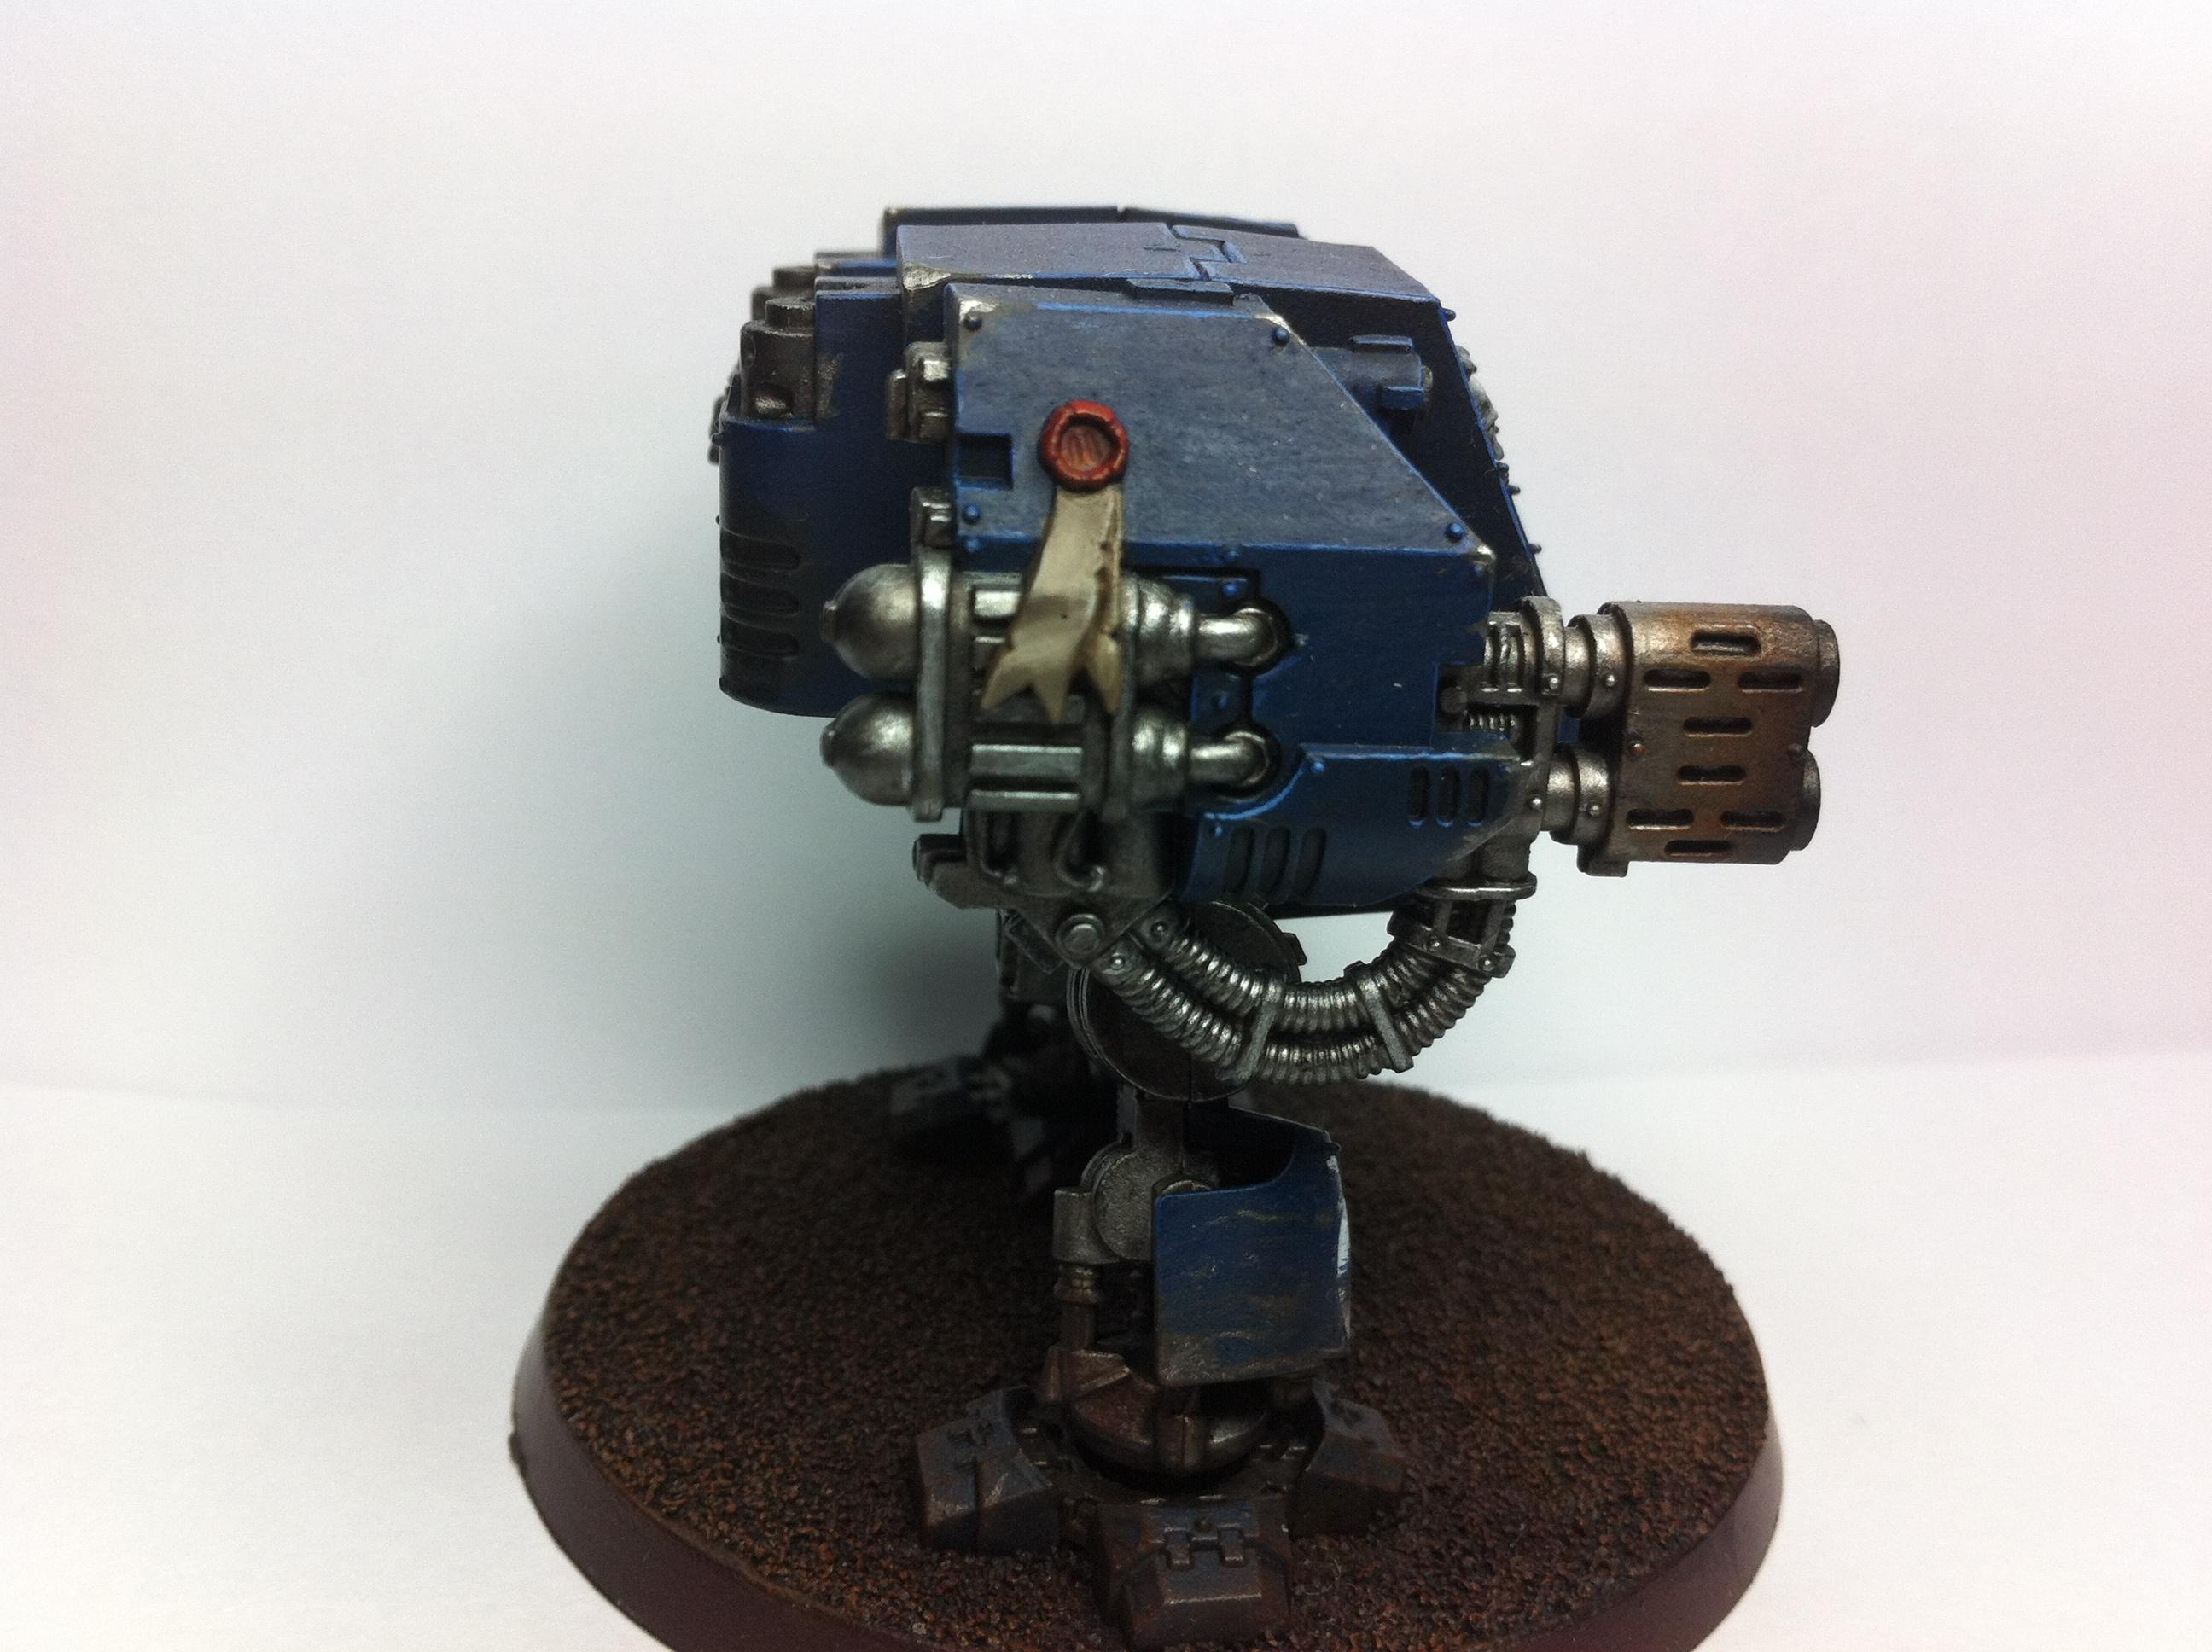 Dreadnought, Meltagun, Space Marines